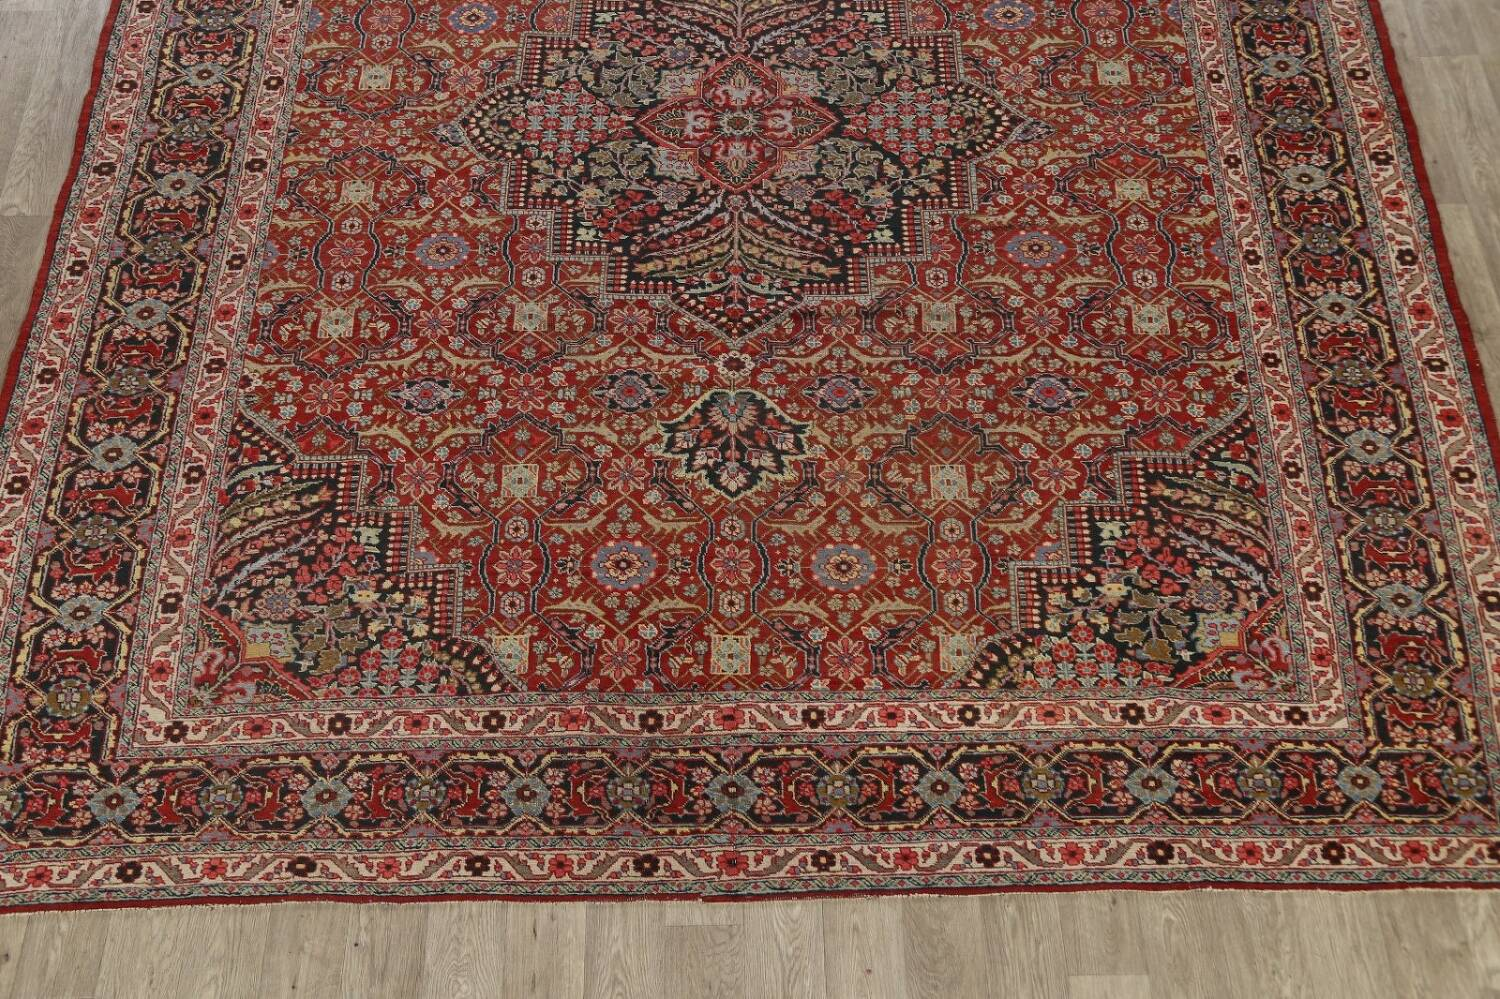 Pre-1900 Antique Sultanabad Persian Area Rug 11x13 Large image 8